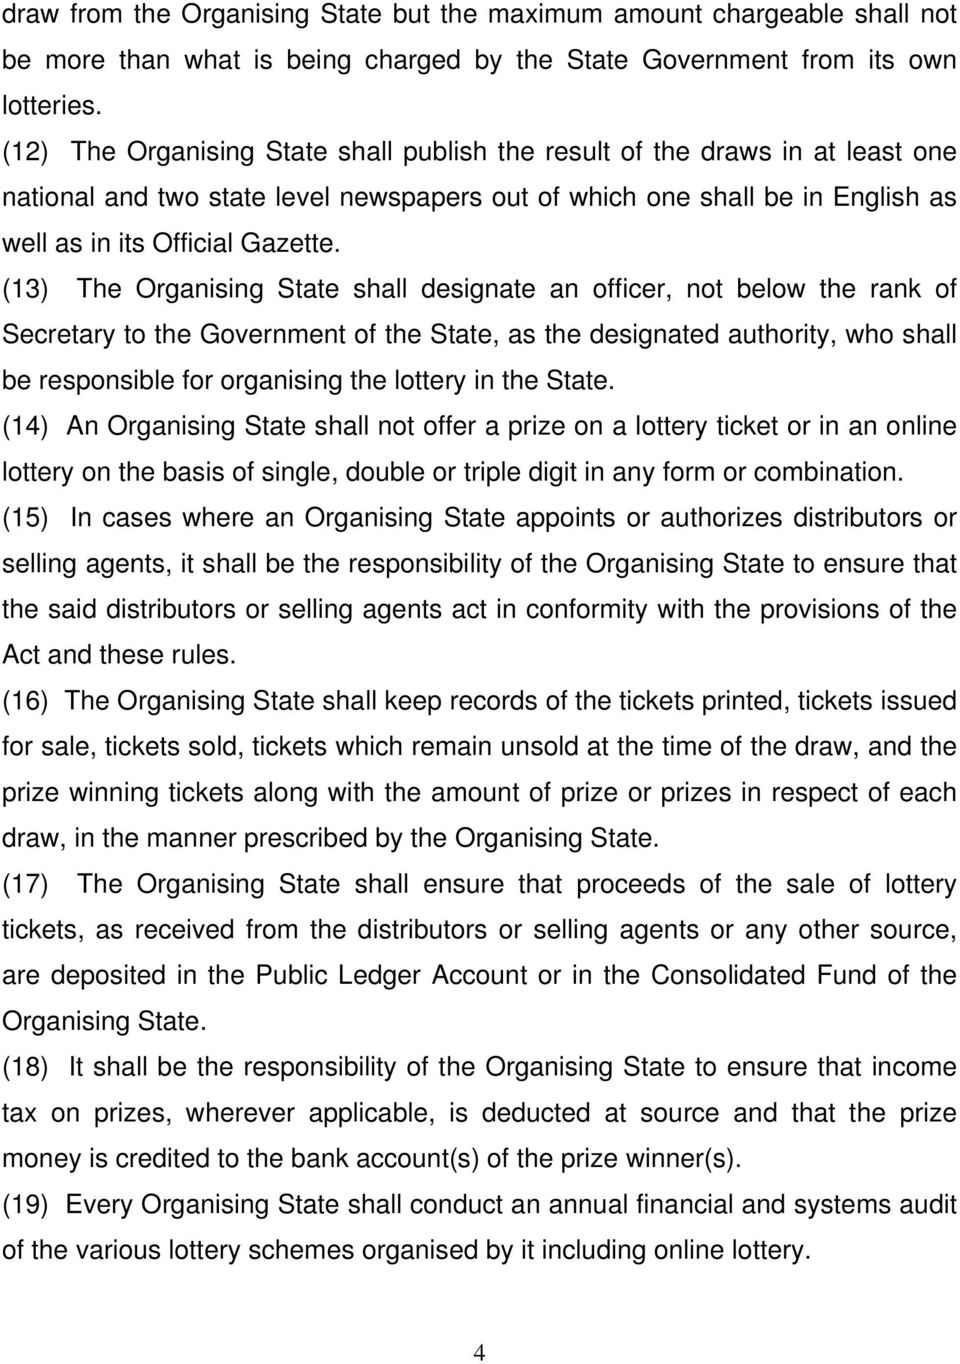 (13) The Organising State shall designate an officer, not below the rank of Secretary to the Government of the State, as the designated authority, who shall be responsible for organising the lottery